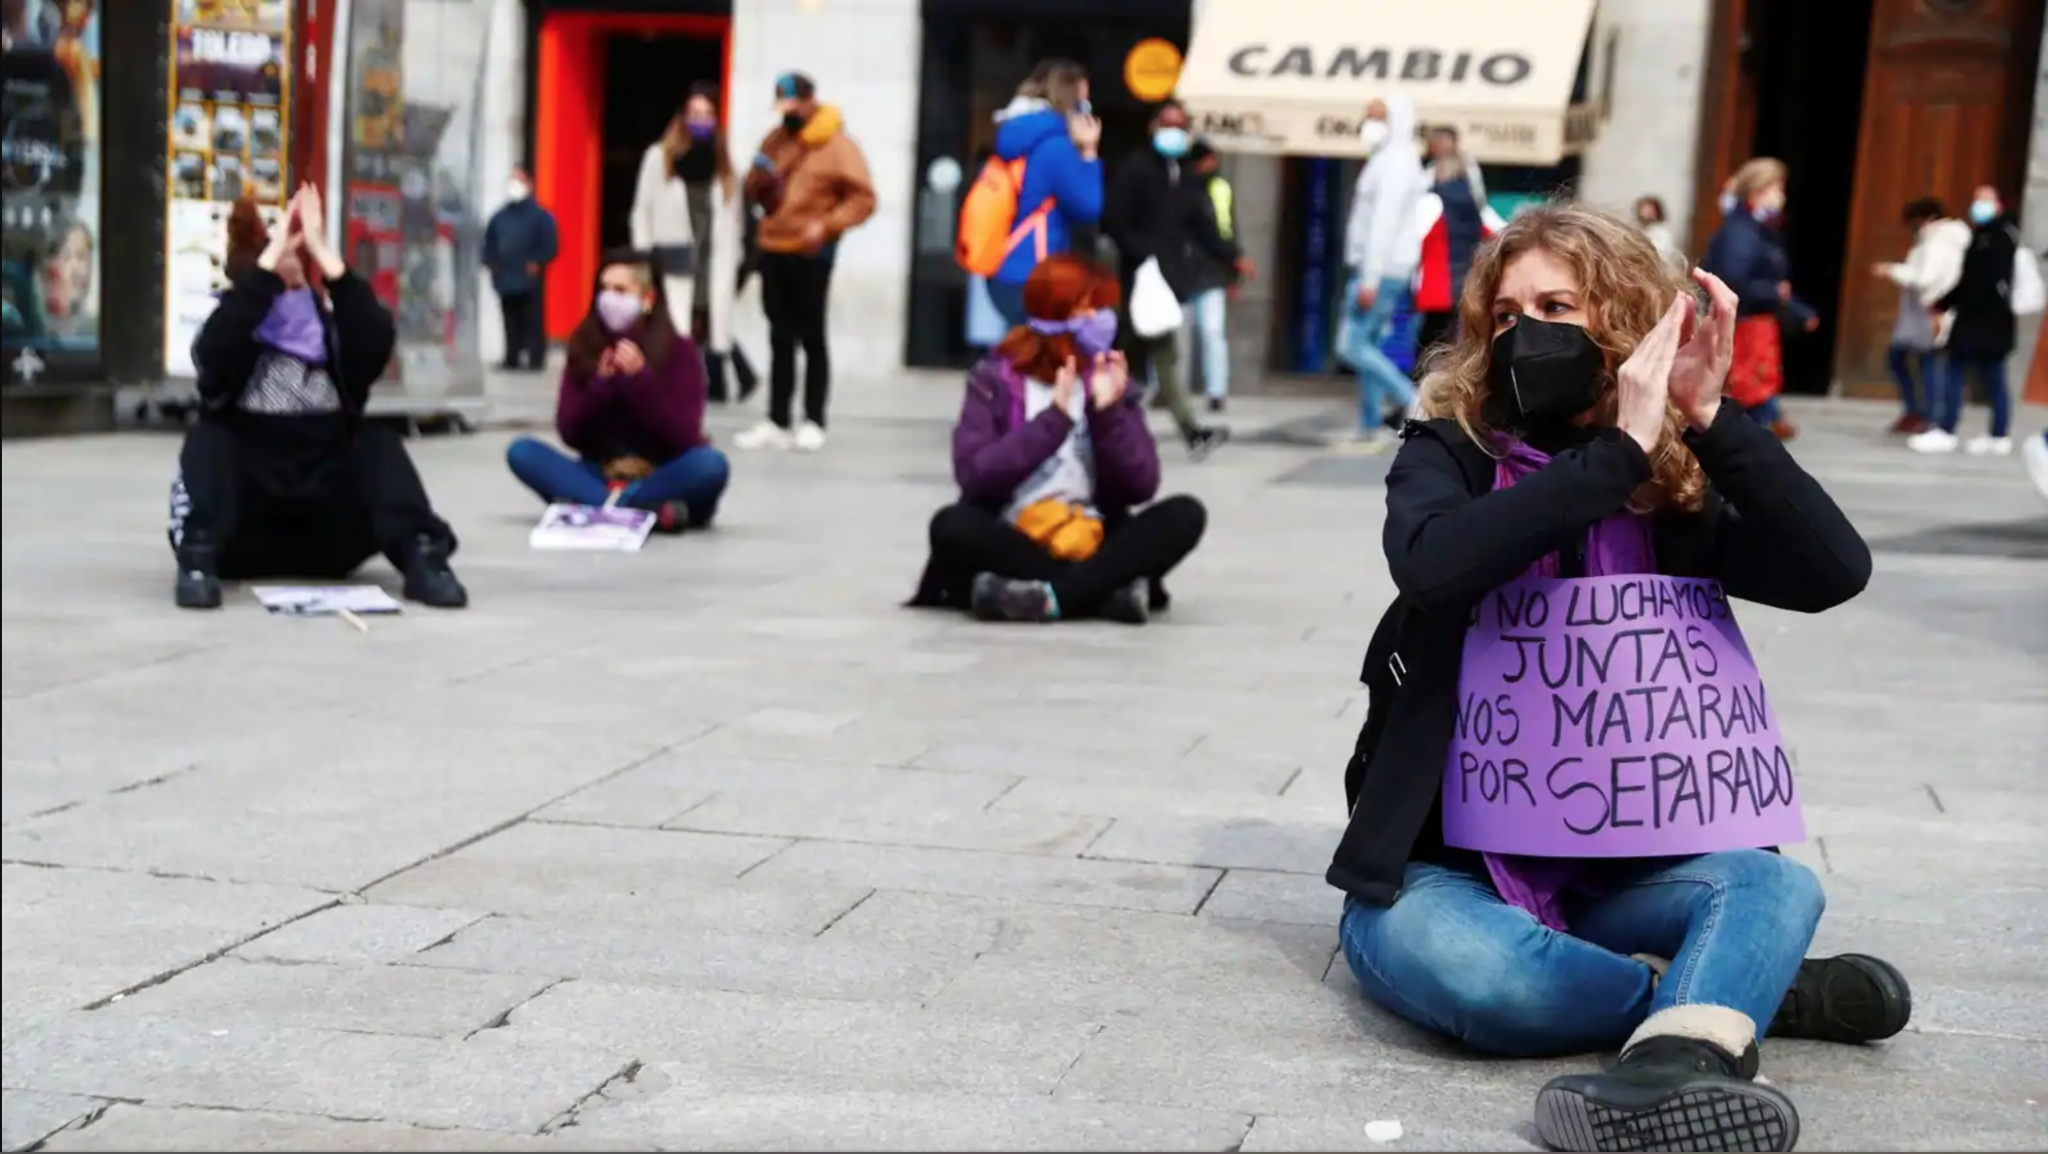 feminist protesters in Madrid sit on the ground holding signs on International Women's Day 2021.